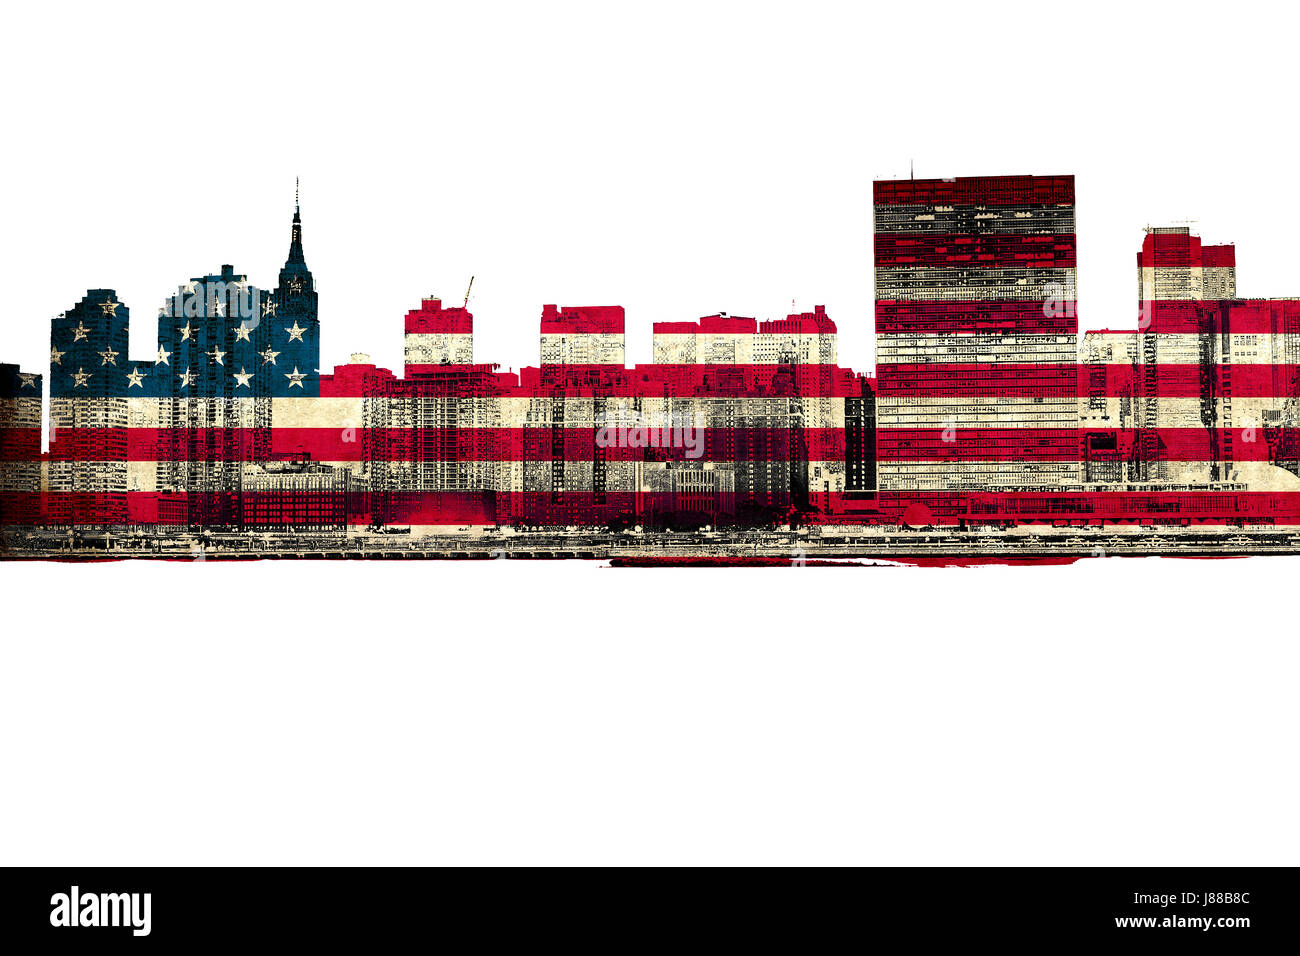 Flag Overlay Stock Photos & Flag Overlay Stock Images - Alamy